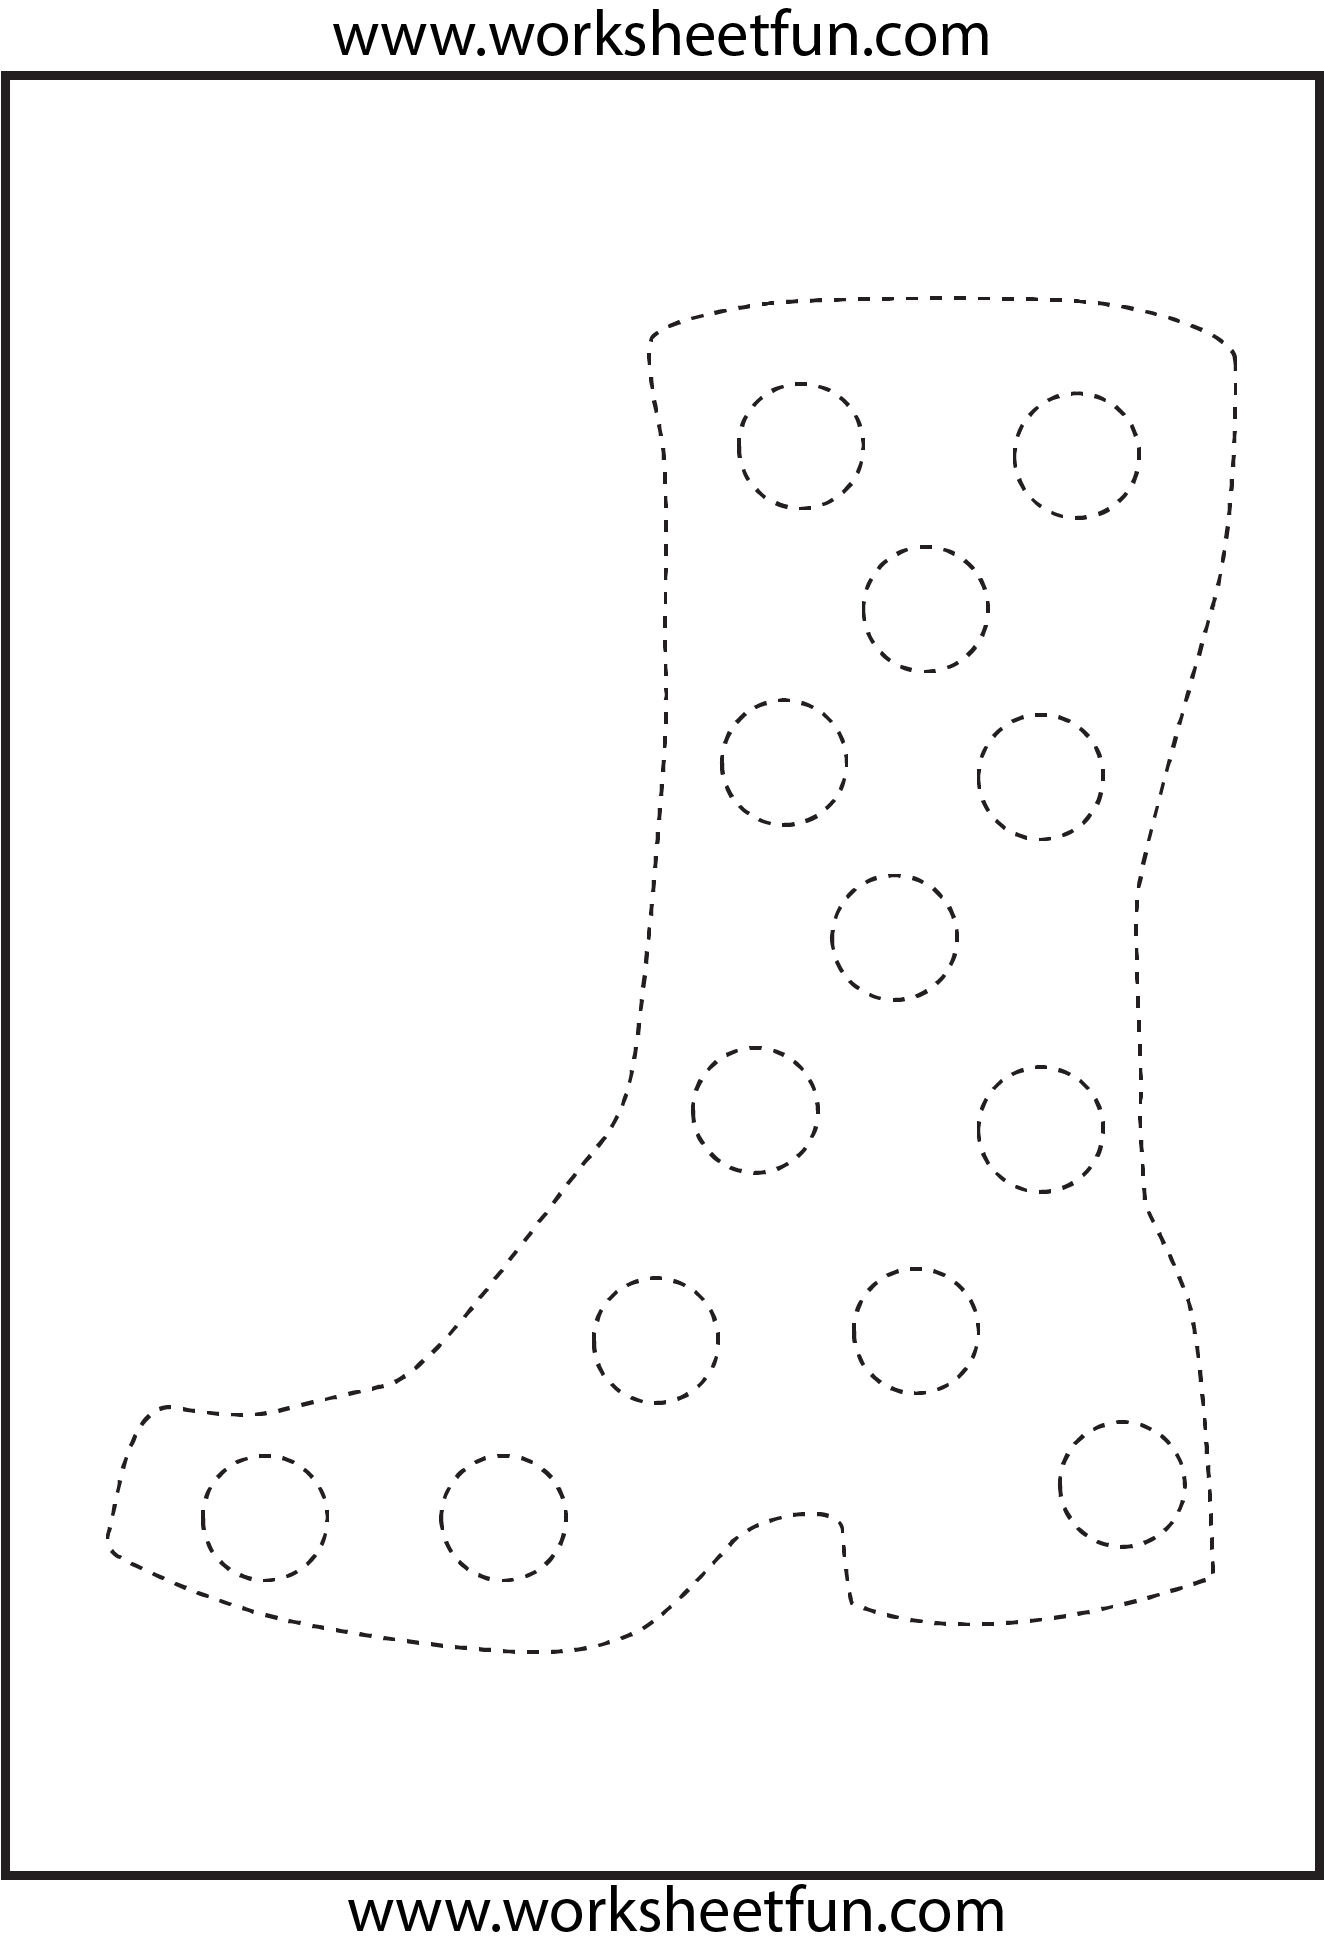 Picture Tracing Boot 1 Worksheet Free Printable Worksheets Worksheetfun